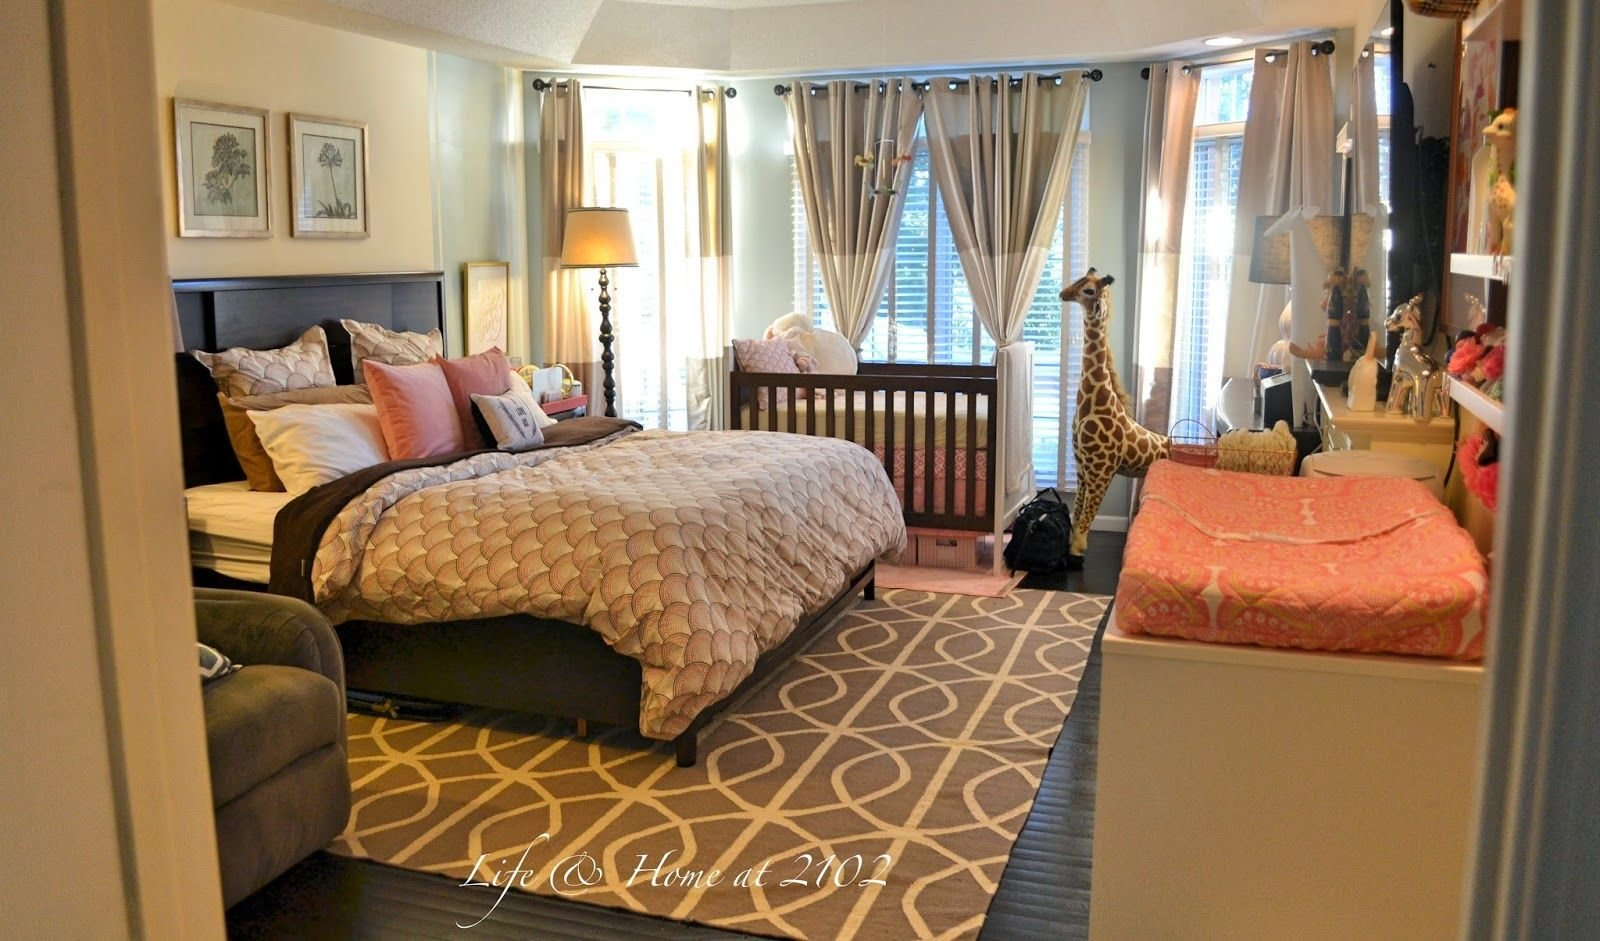 Best Life Home At 2102 Master Bedroom With Nursery Reveal With Pictures